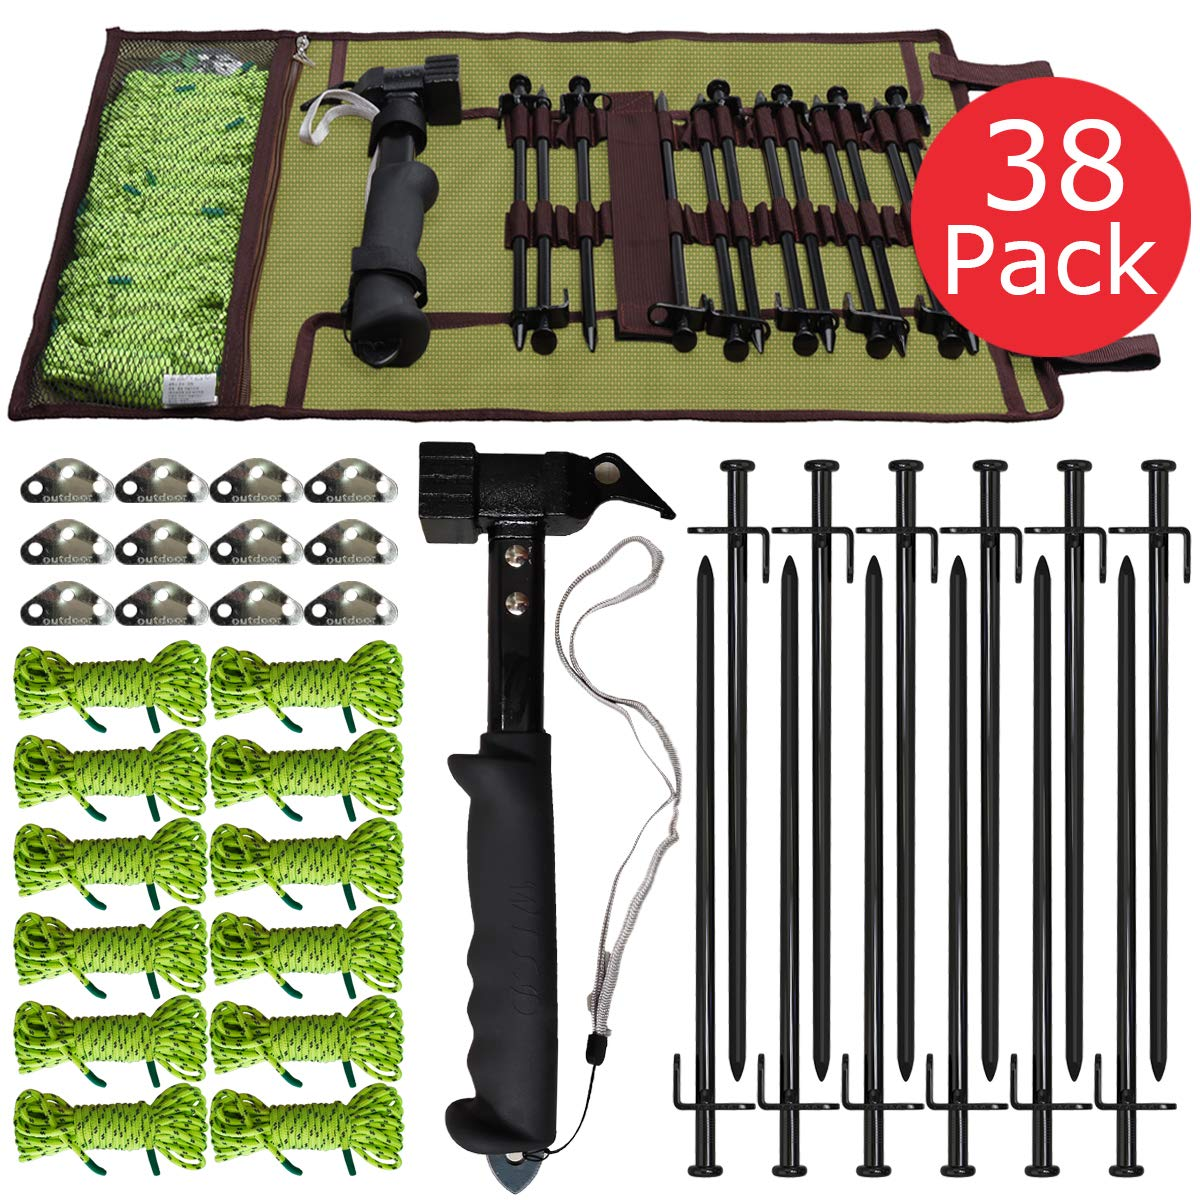 BareFour Tent Stakes Available in Rocky Place Dessert Snowfield and Grassland Tent Accessories Kit Heavy Duty Camping Stakes 12-Inch//8-Inch- Forged Steel Tent Pegs Unbreakable and Inflexible